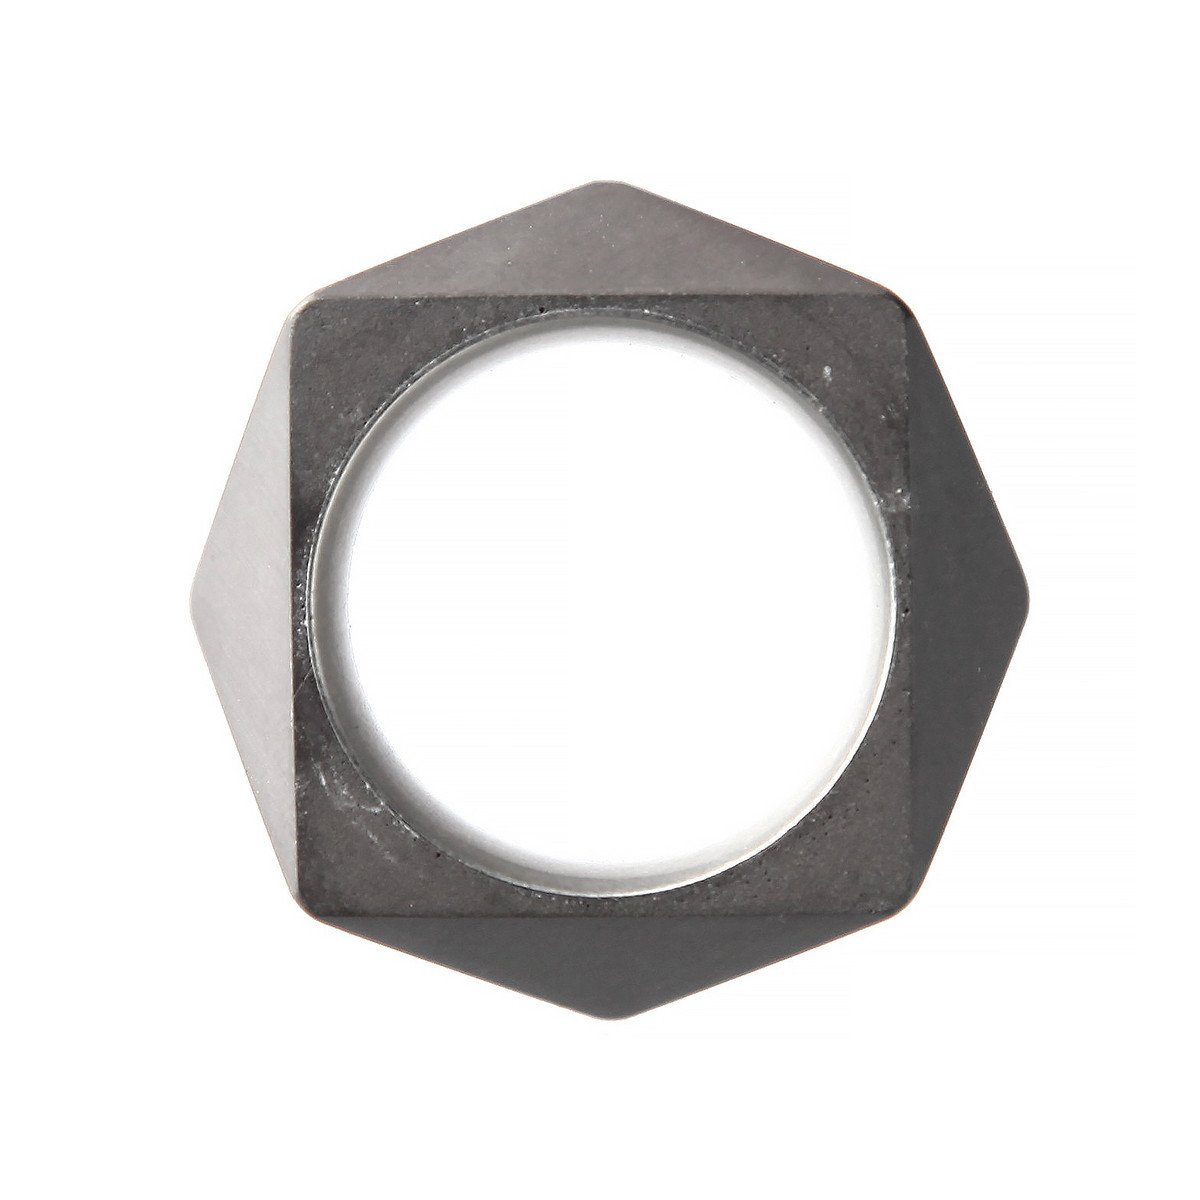 Polygon Concrete Ring -33564